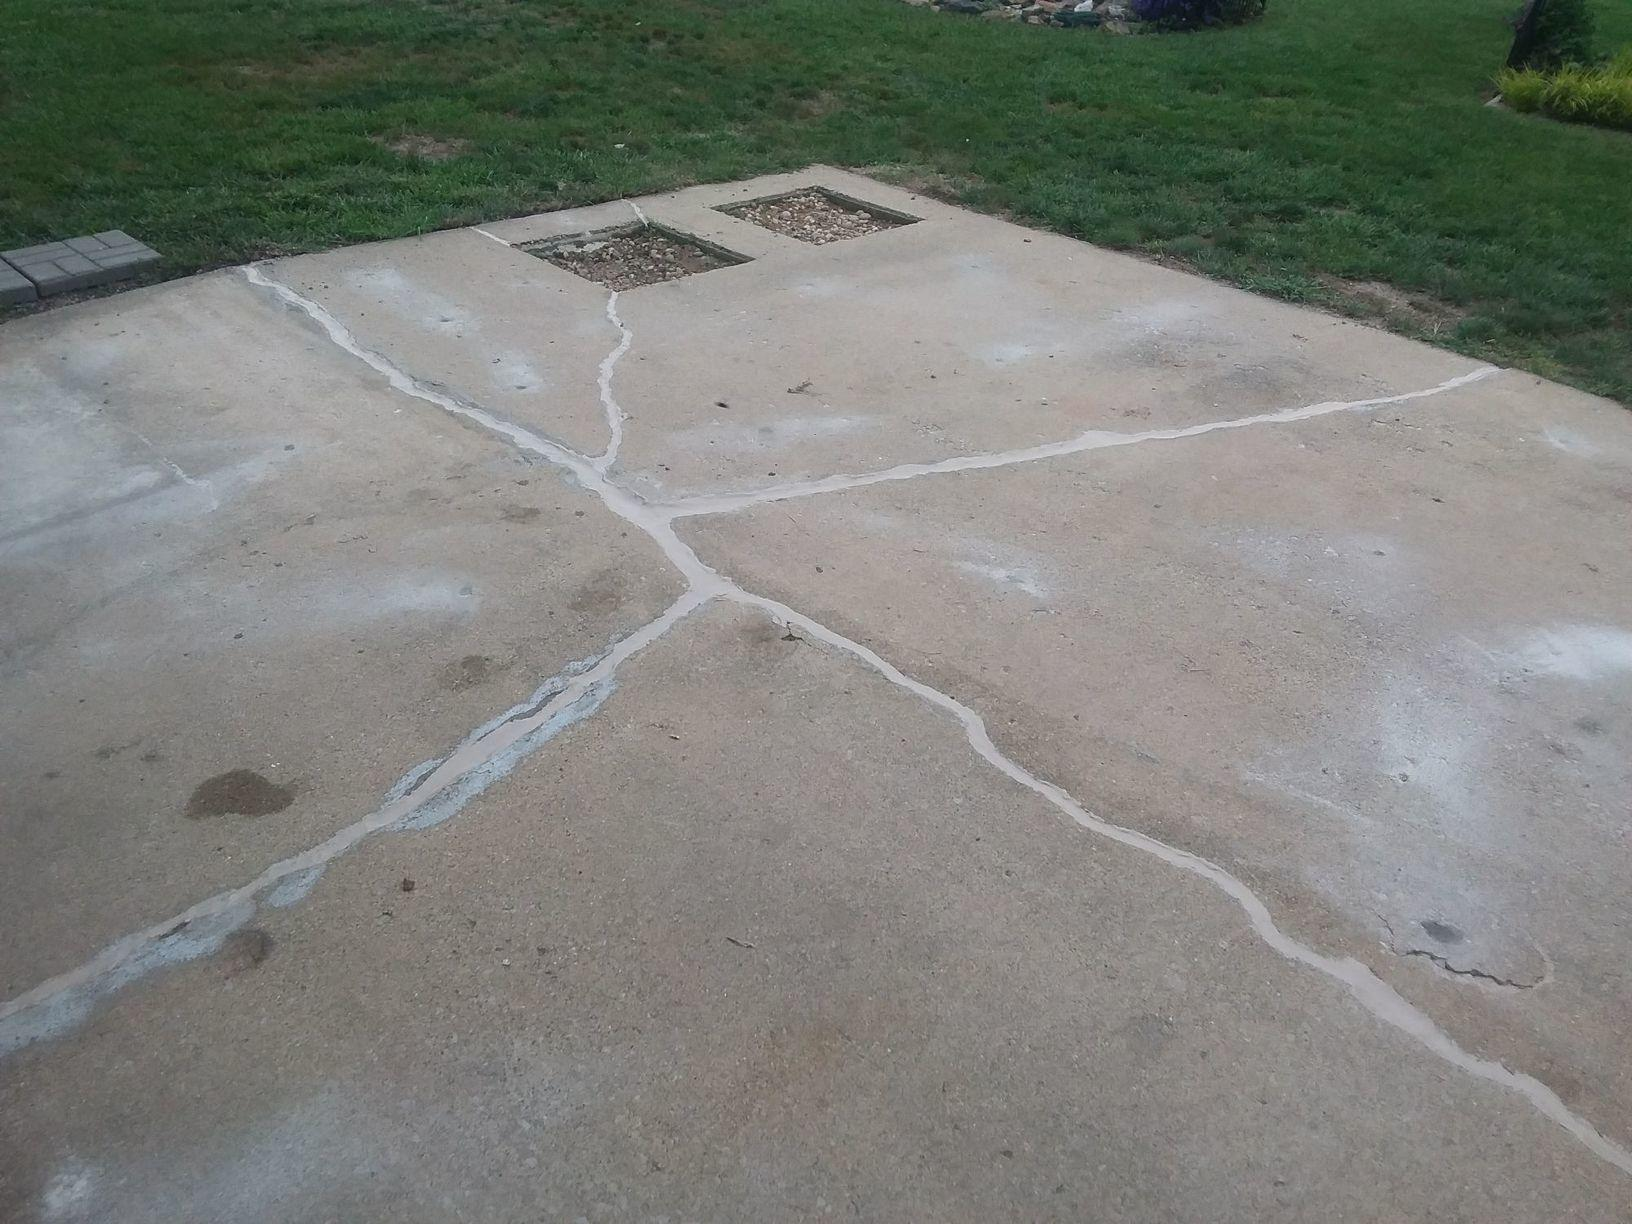 Badly Damaged Centralia, IL Patio Repaired With PolyLevel - After Photo